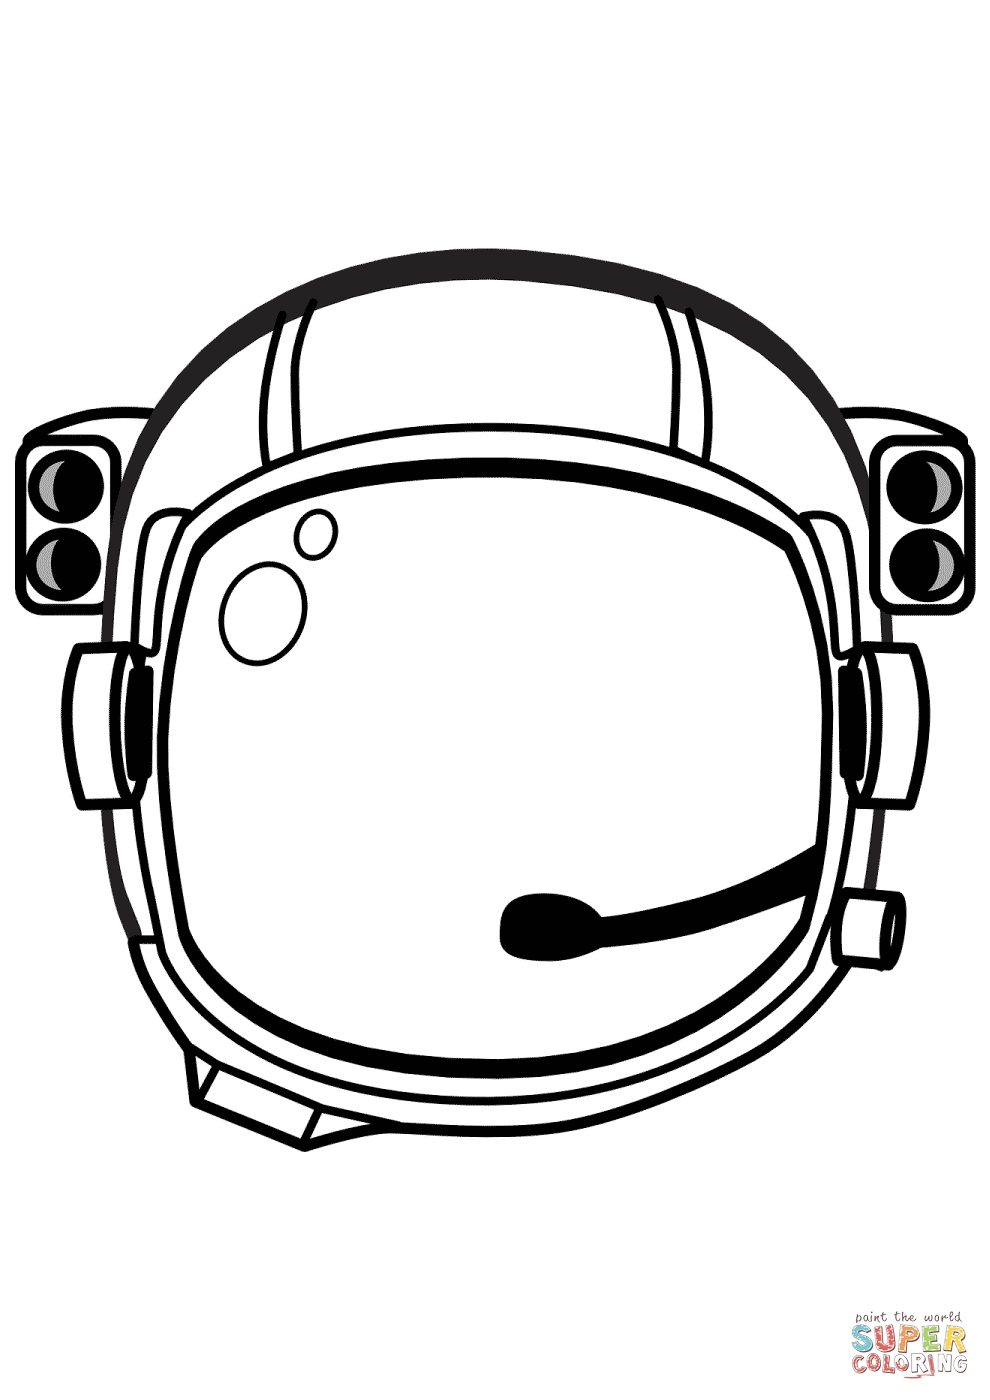 990x1400 Awesome Astronaut Coloring Pages Tumblr Collection Great